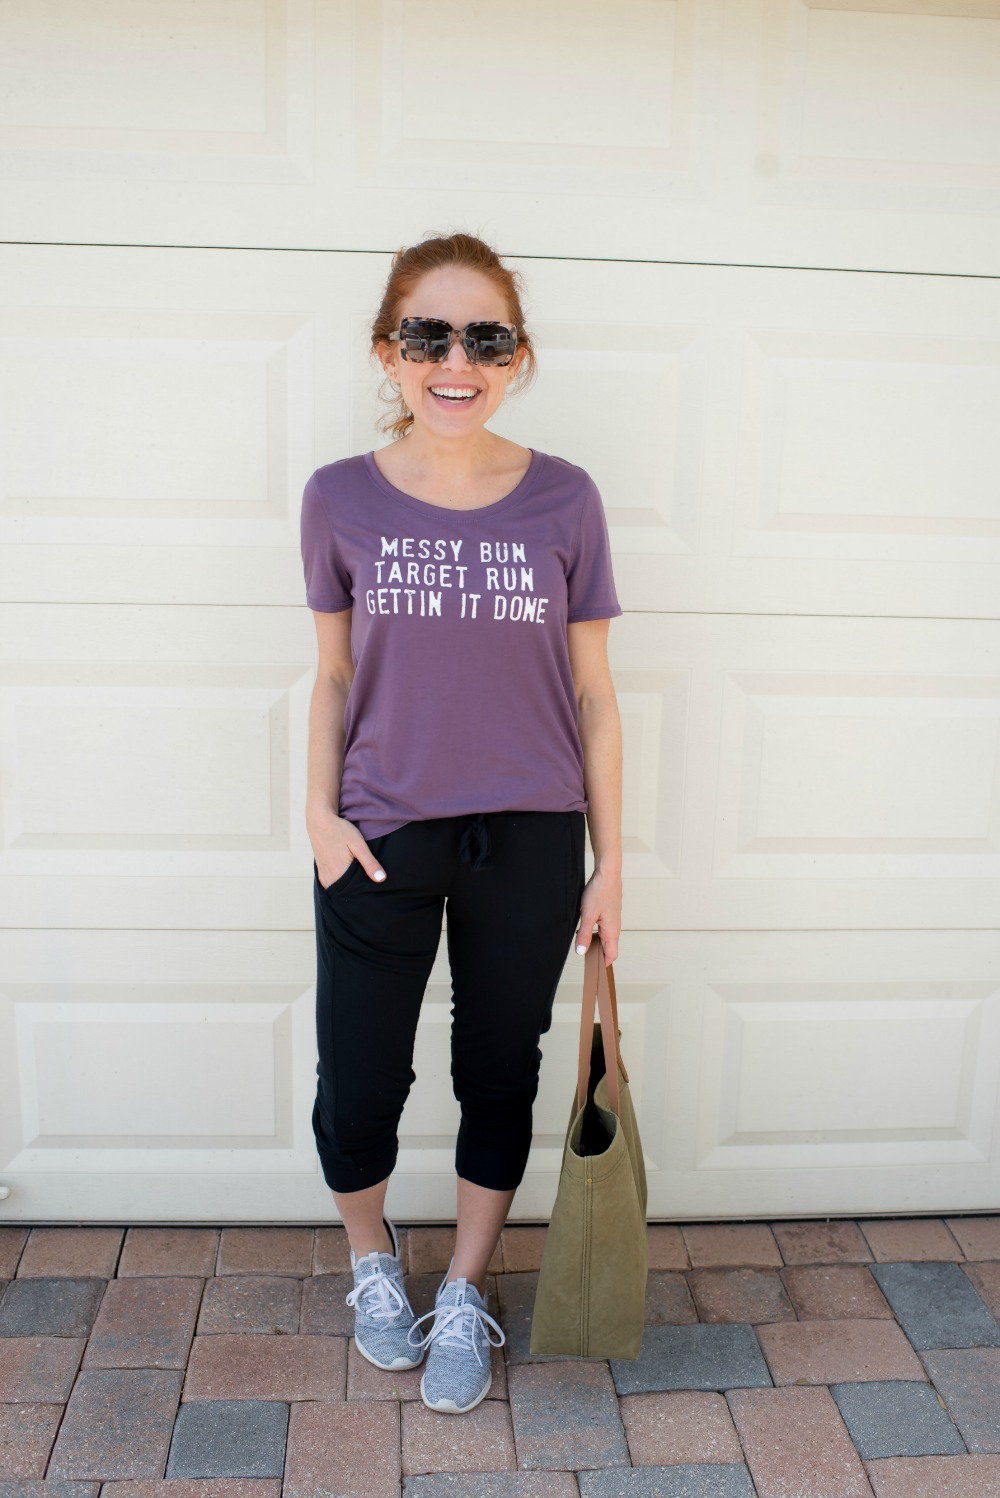 Messy bun, Target run, getting it done! // weekend outfits #realgirlstyle #weekendwear - Casual Weekend Outfit featured by popular Florida style blogger The Modern Savvy